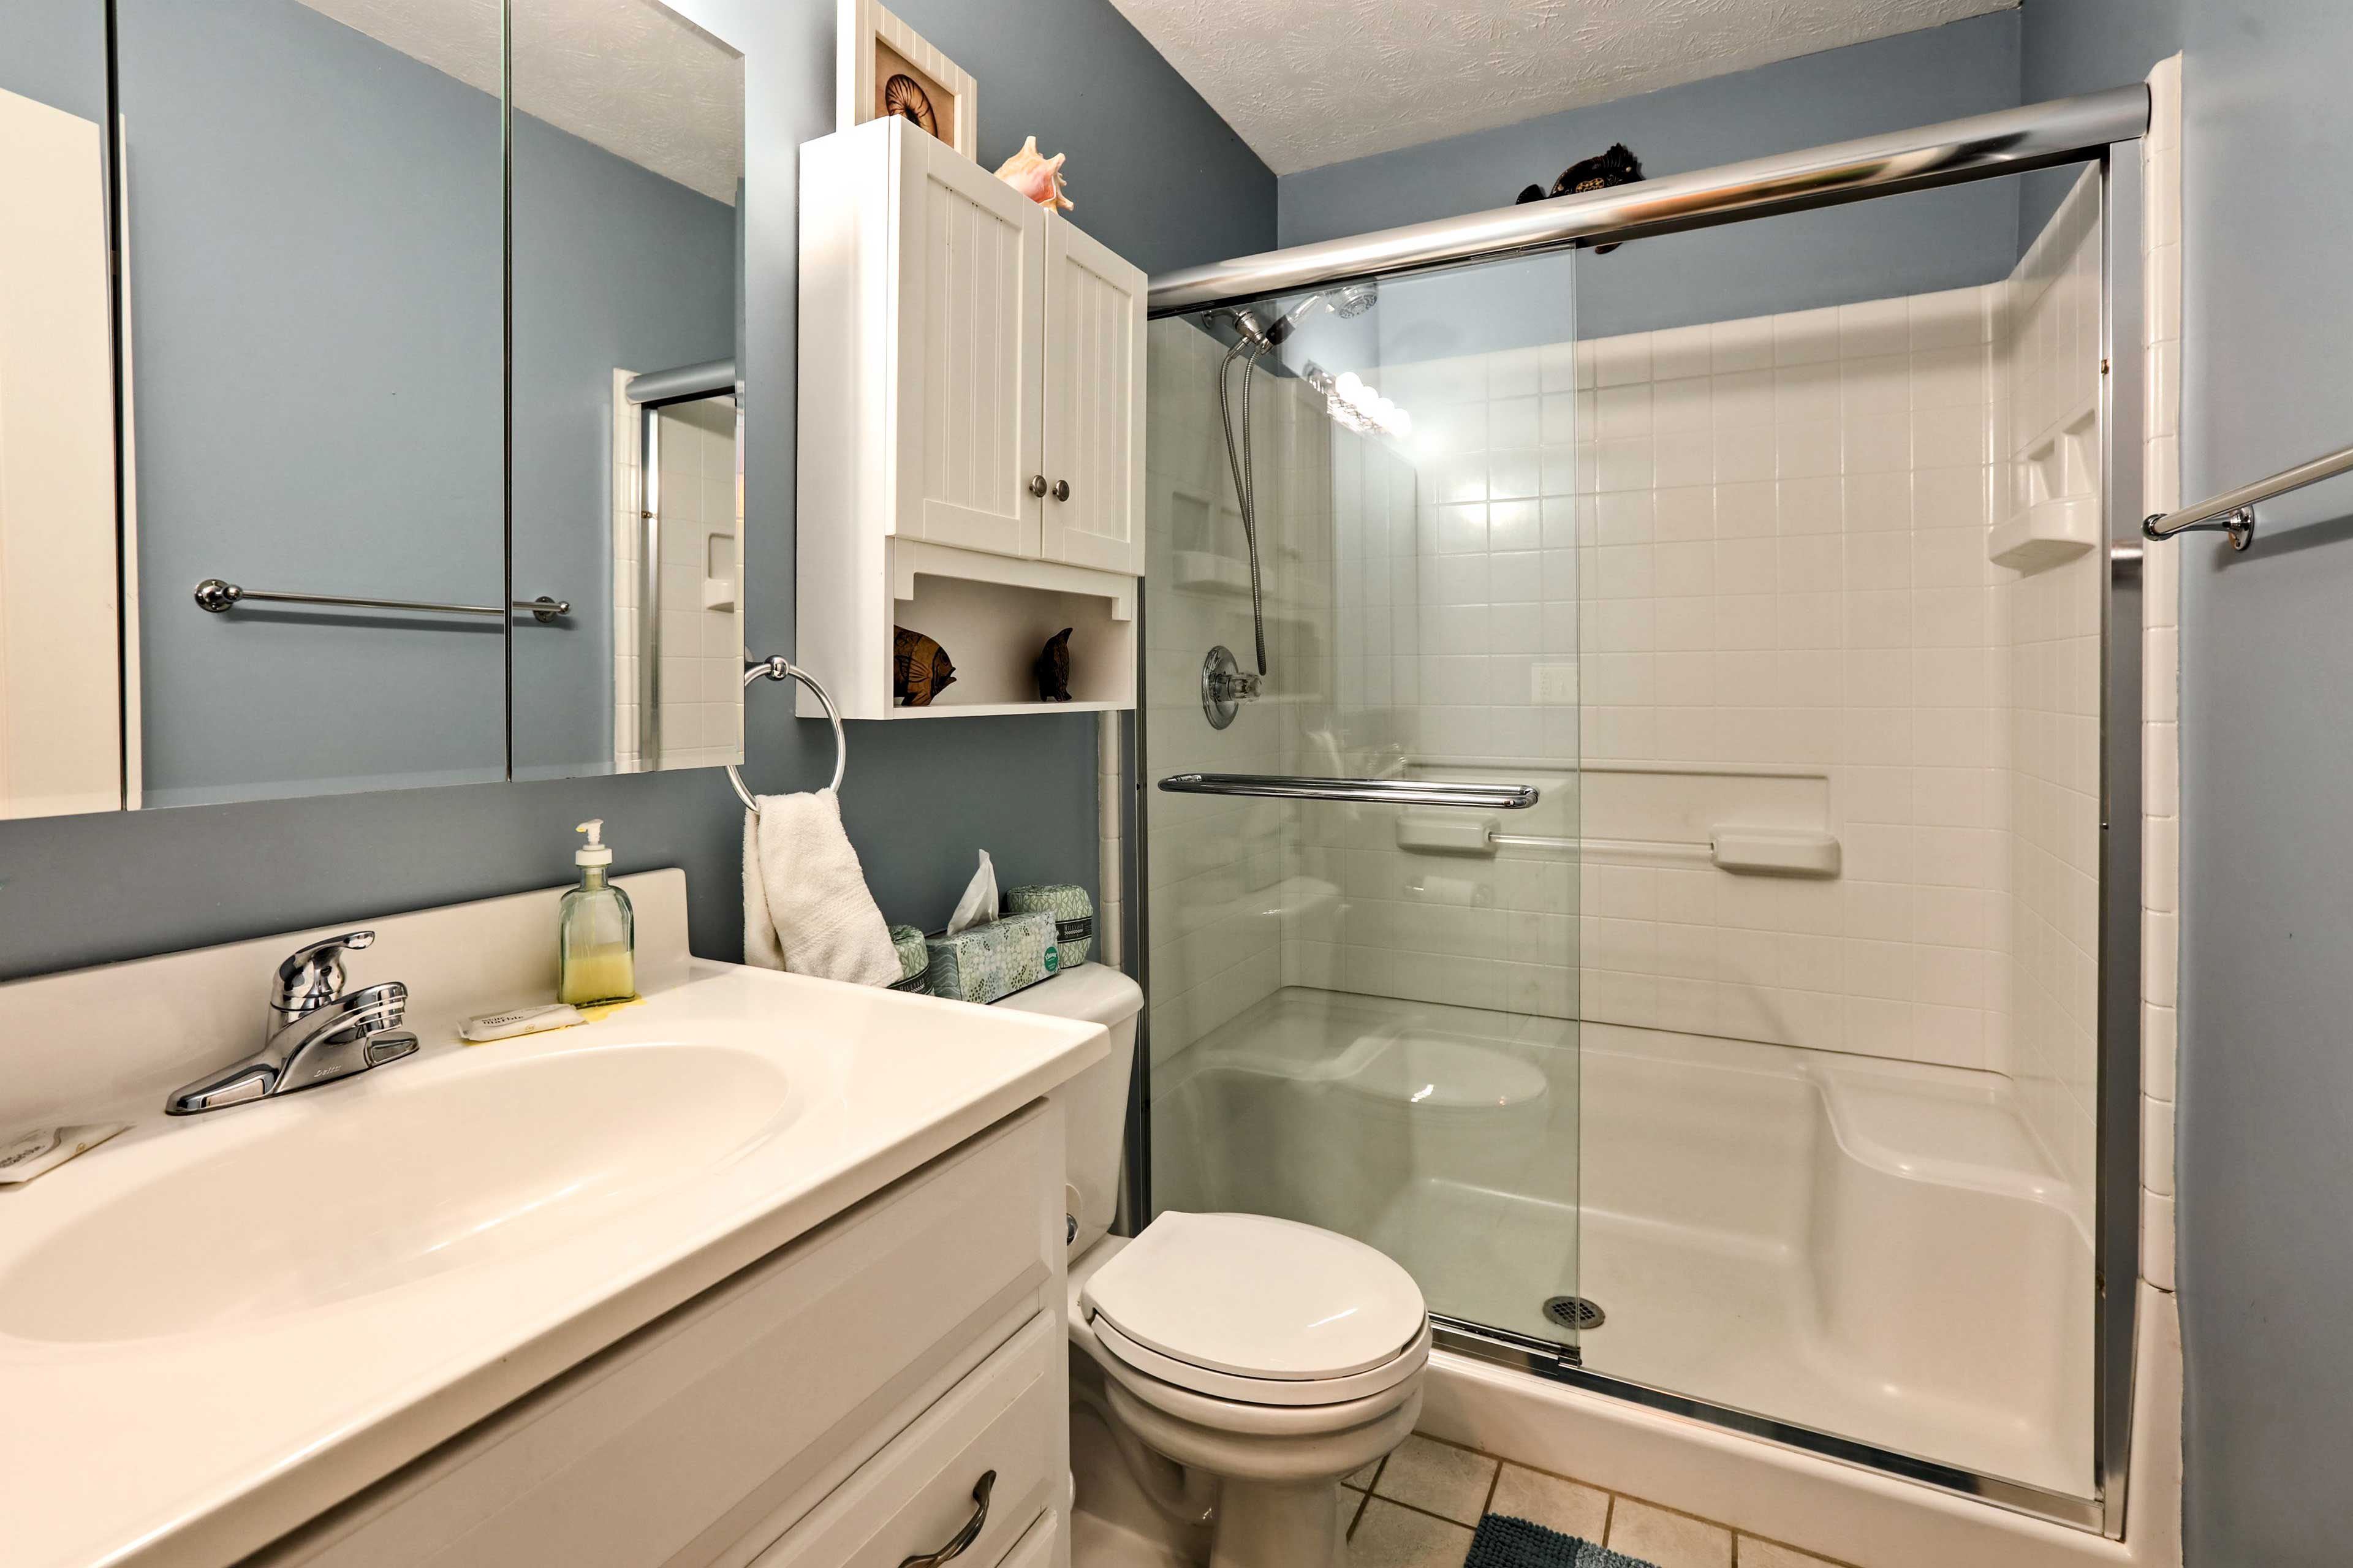 The second bathroom sports a walk-in shower and soft baby-blue walls.